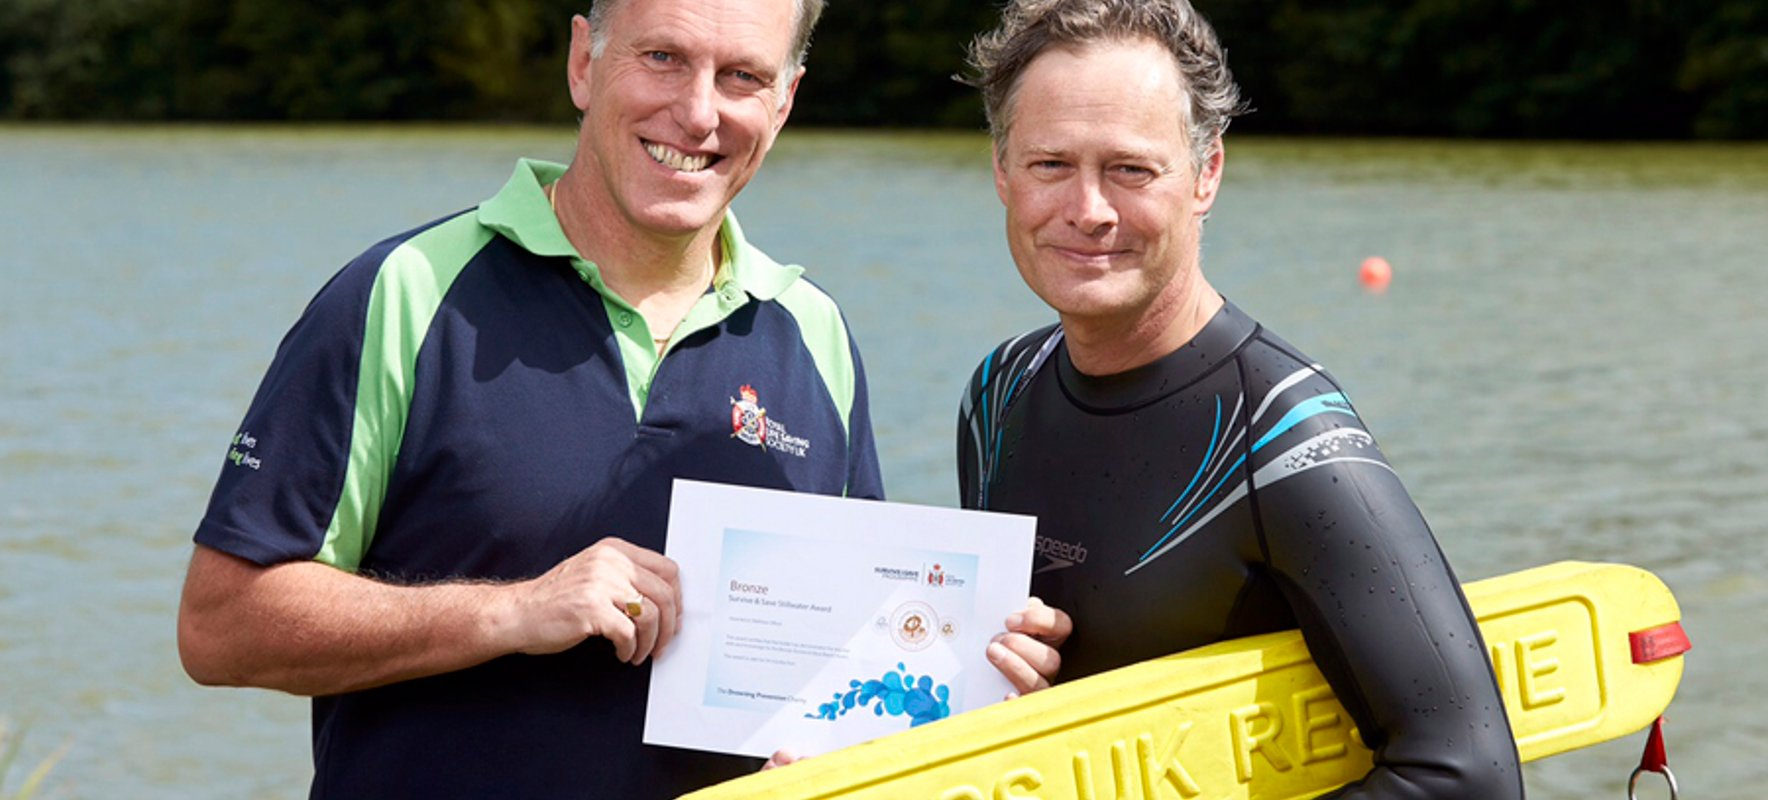 Hendon MP learns essential lifesaving skills with Drowning Prevention Charity